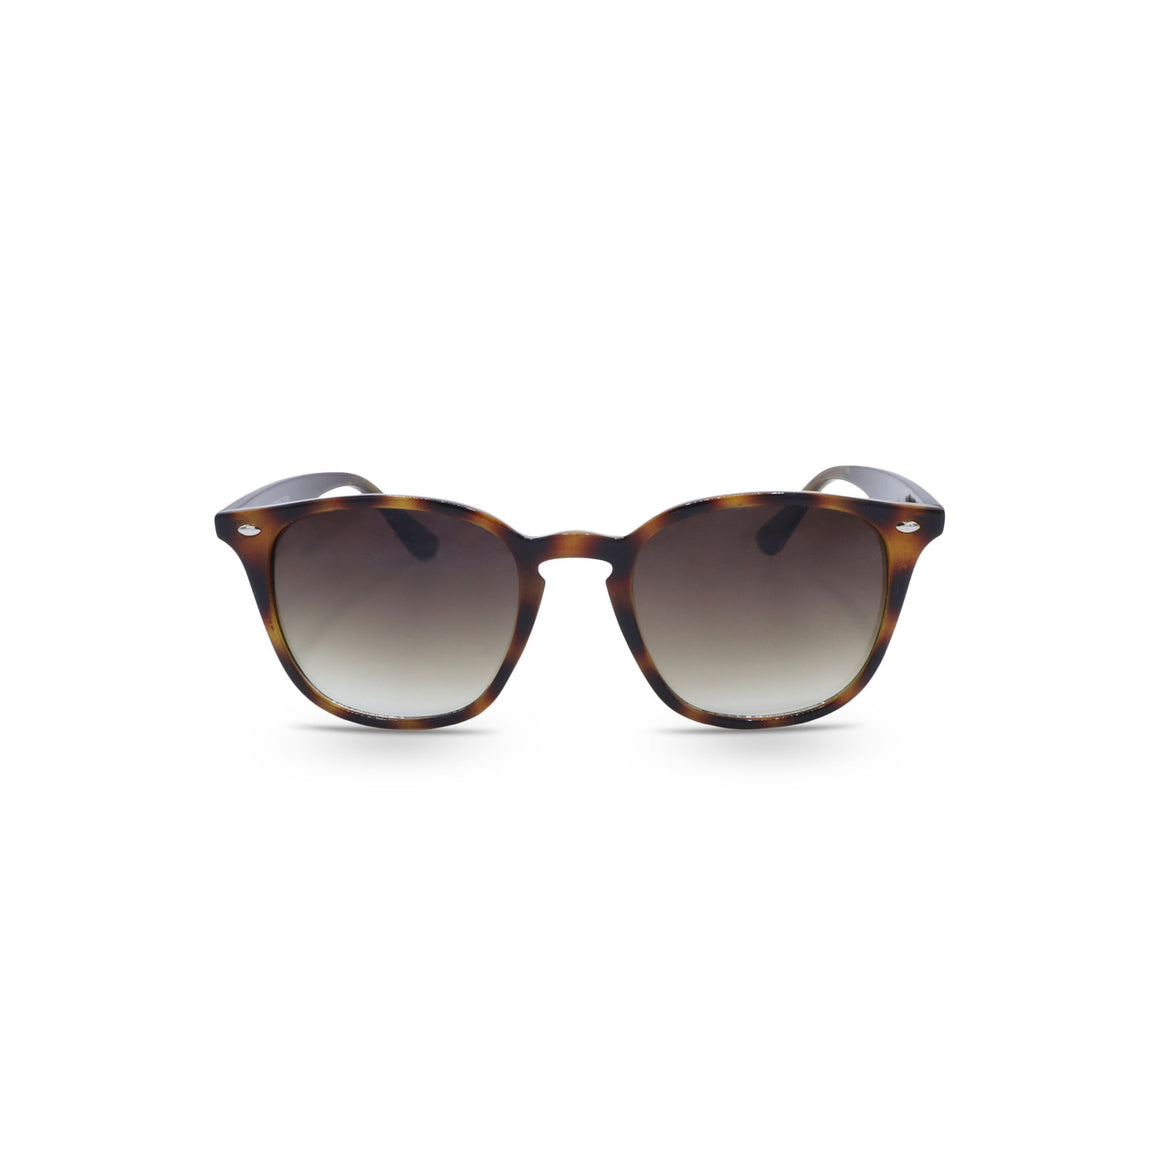 Retro Sunglasses in Leopard Frame & Brown Lens